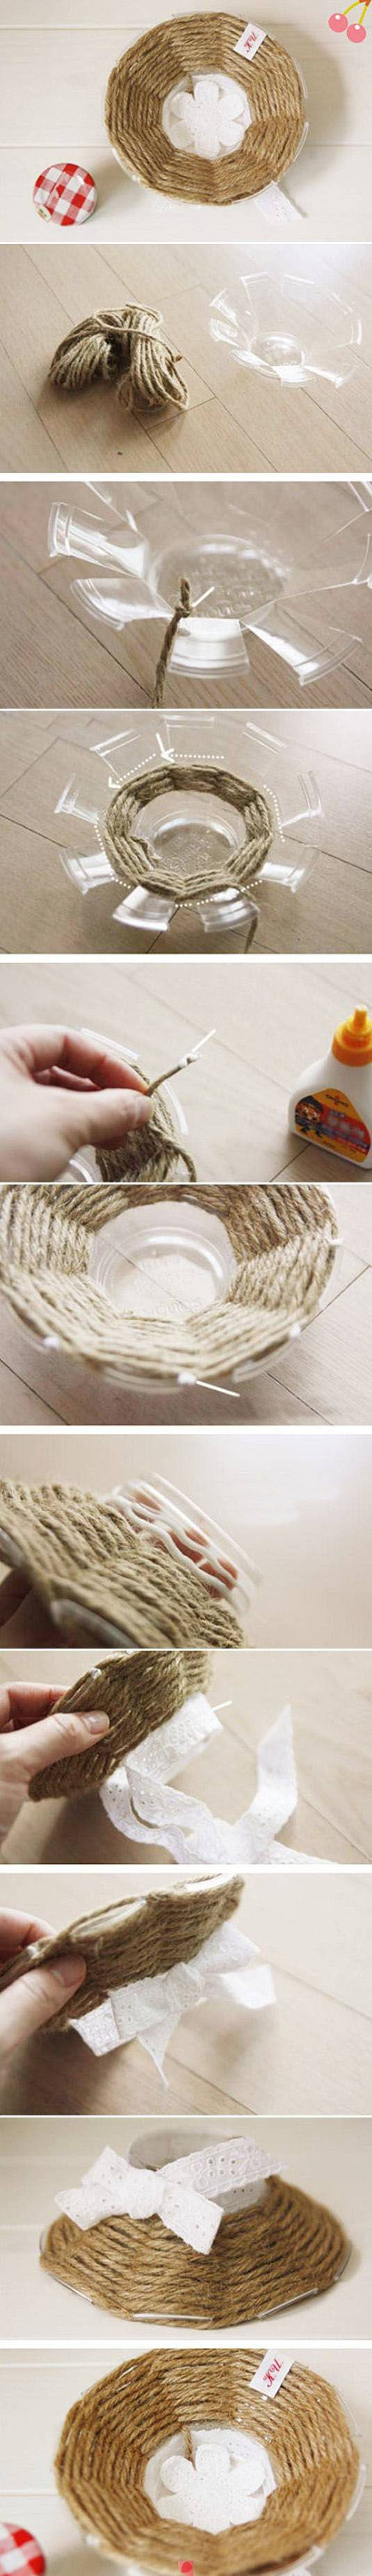 Add a little rustic charm to that old plastic container....with magic hemp tricks!